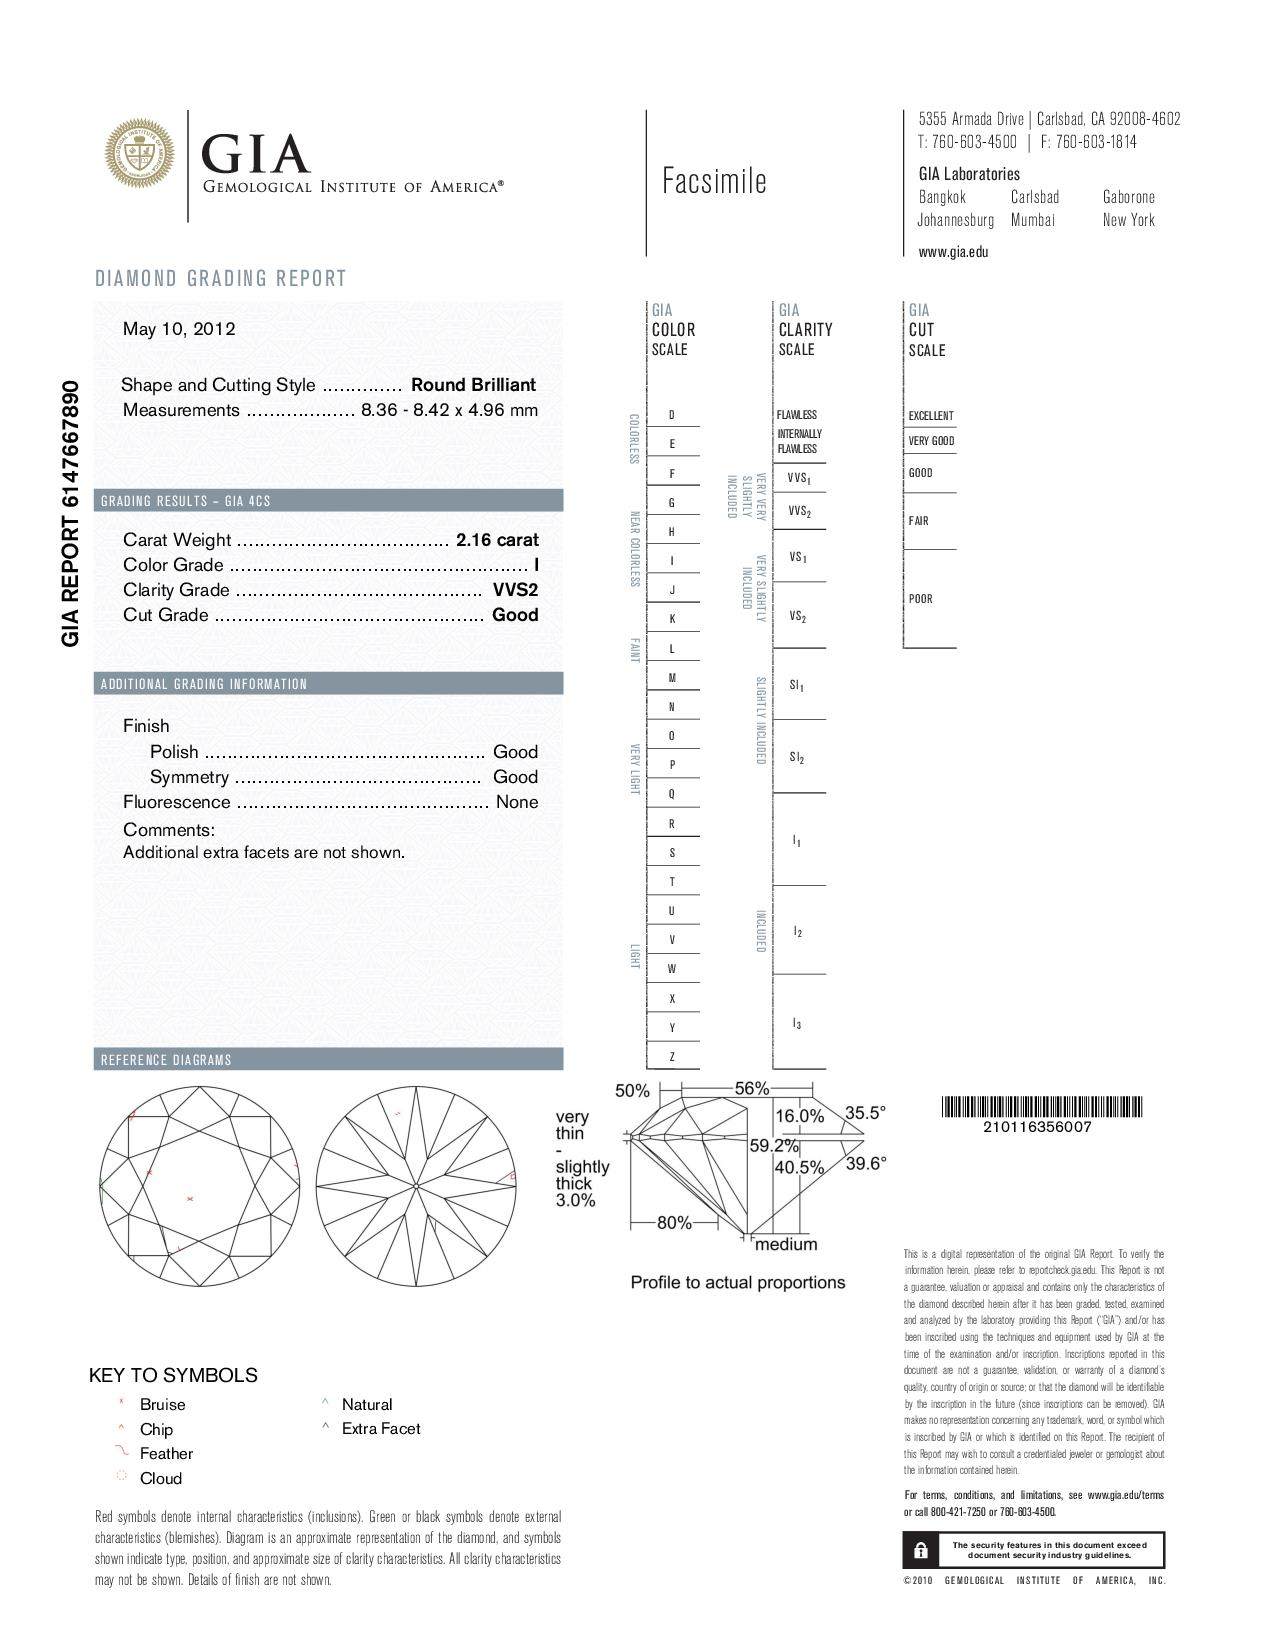 This is a 2.16 carat round shape, I color, VVS2 clarity natural diamond accompanied by a GIA grading report.